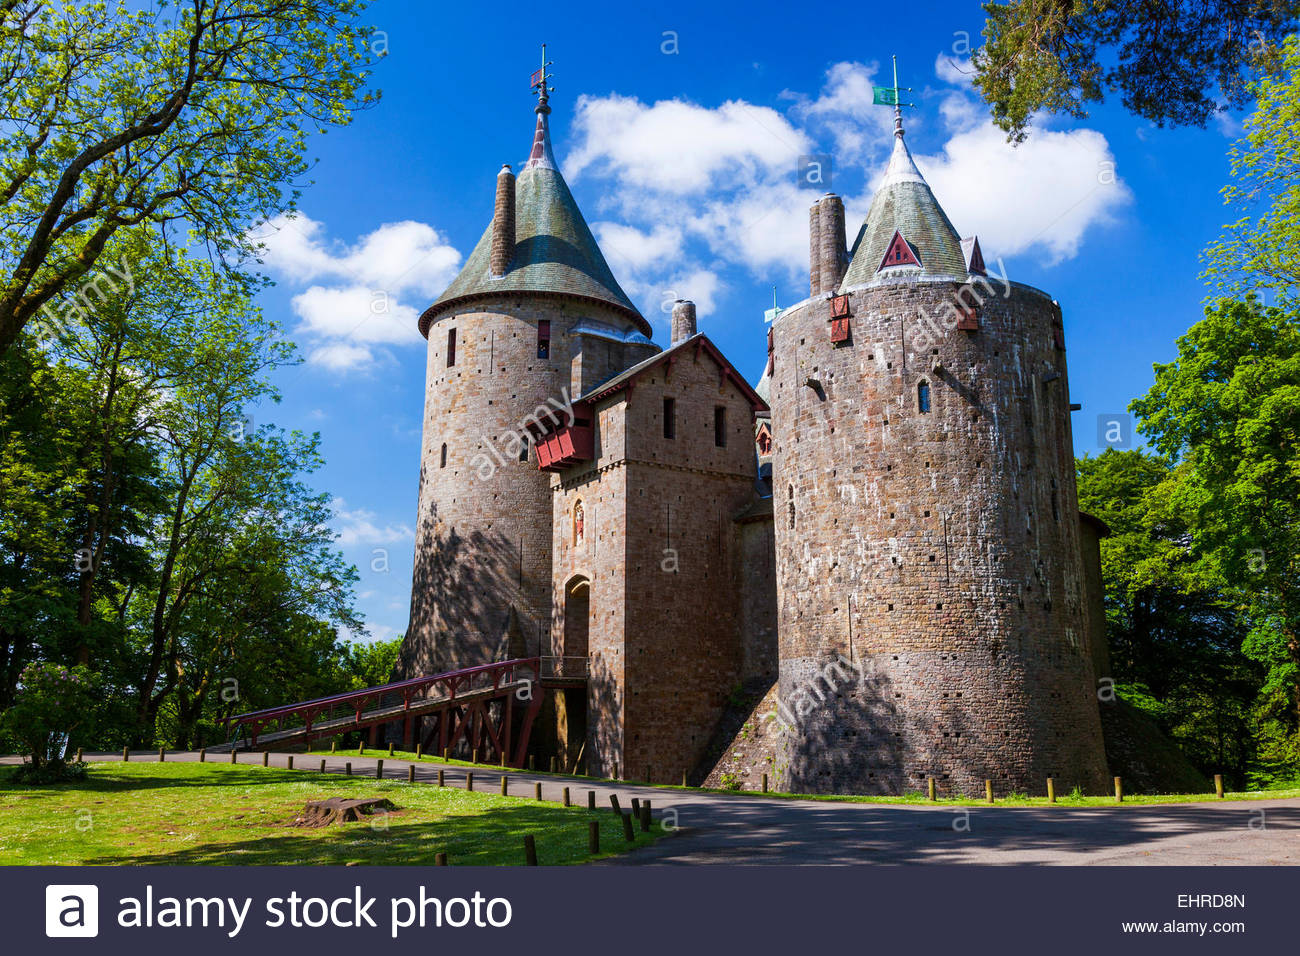 Castell Coch Cardiff, Castell Coch, Castle Coch, The Red Castle,Tongwynlais, Cardiff ...